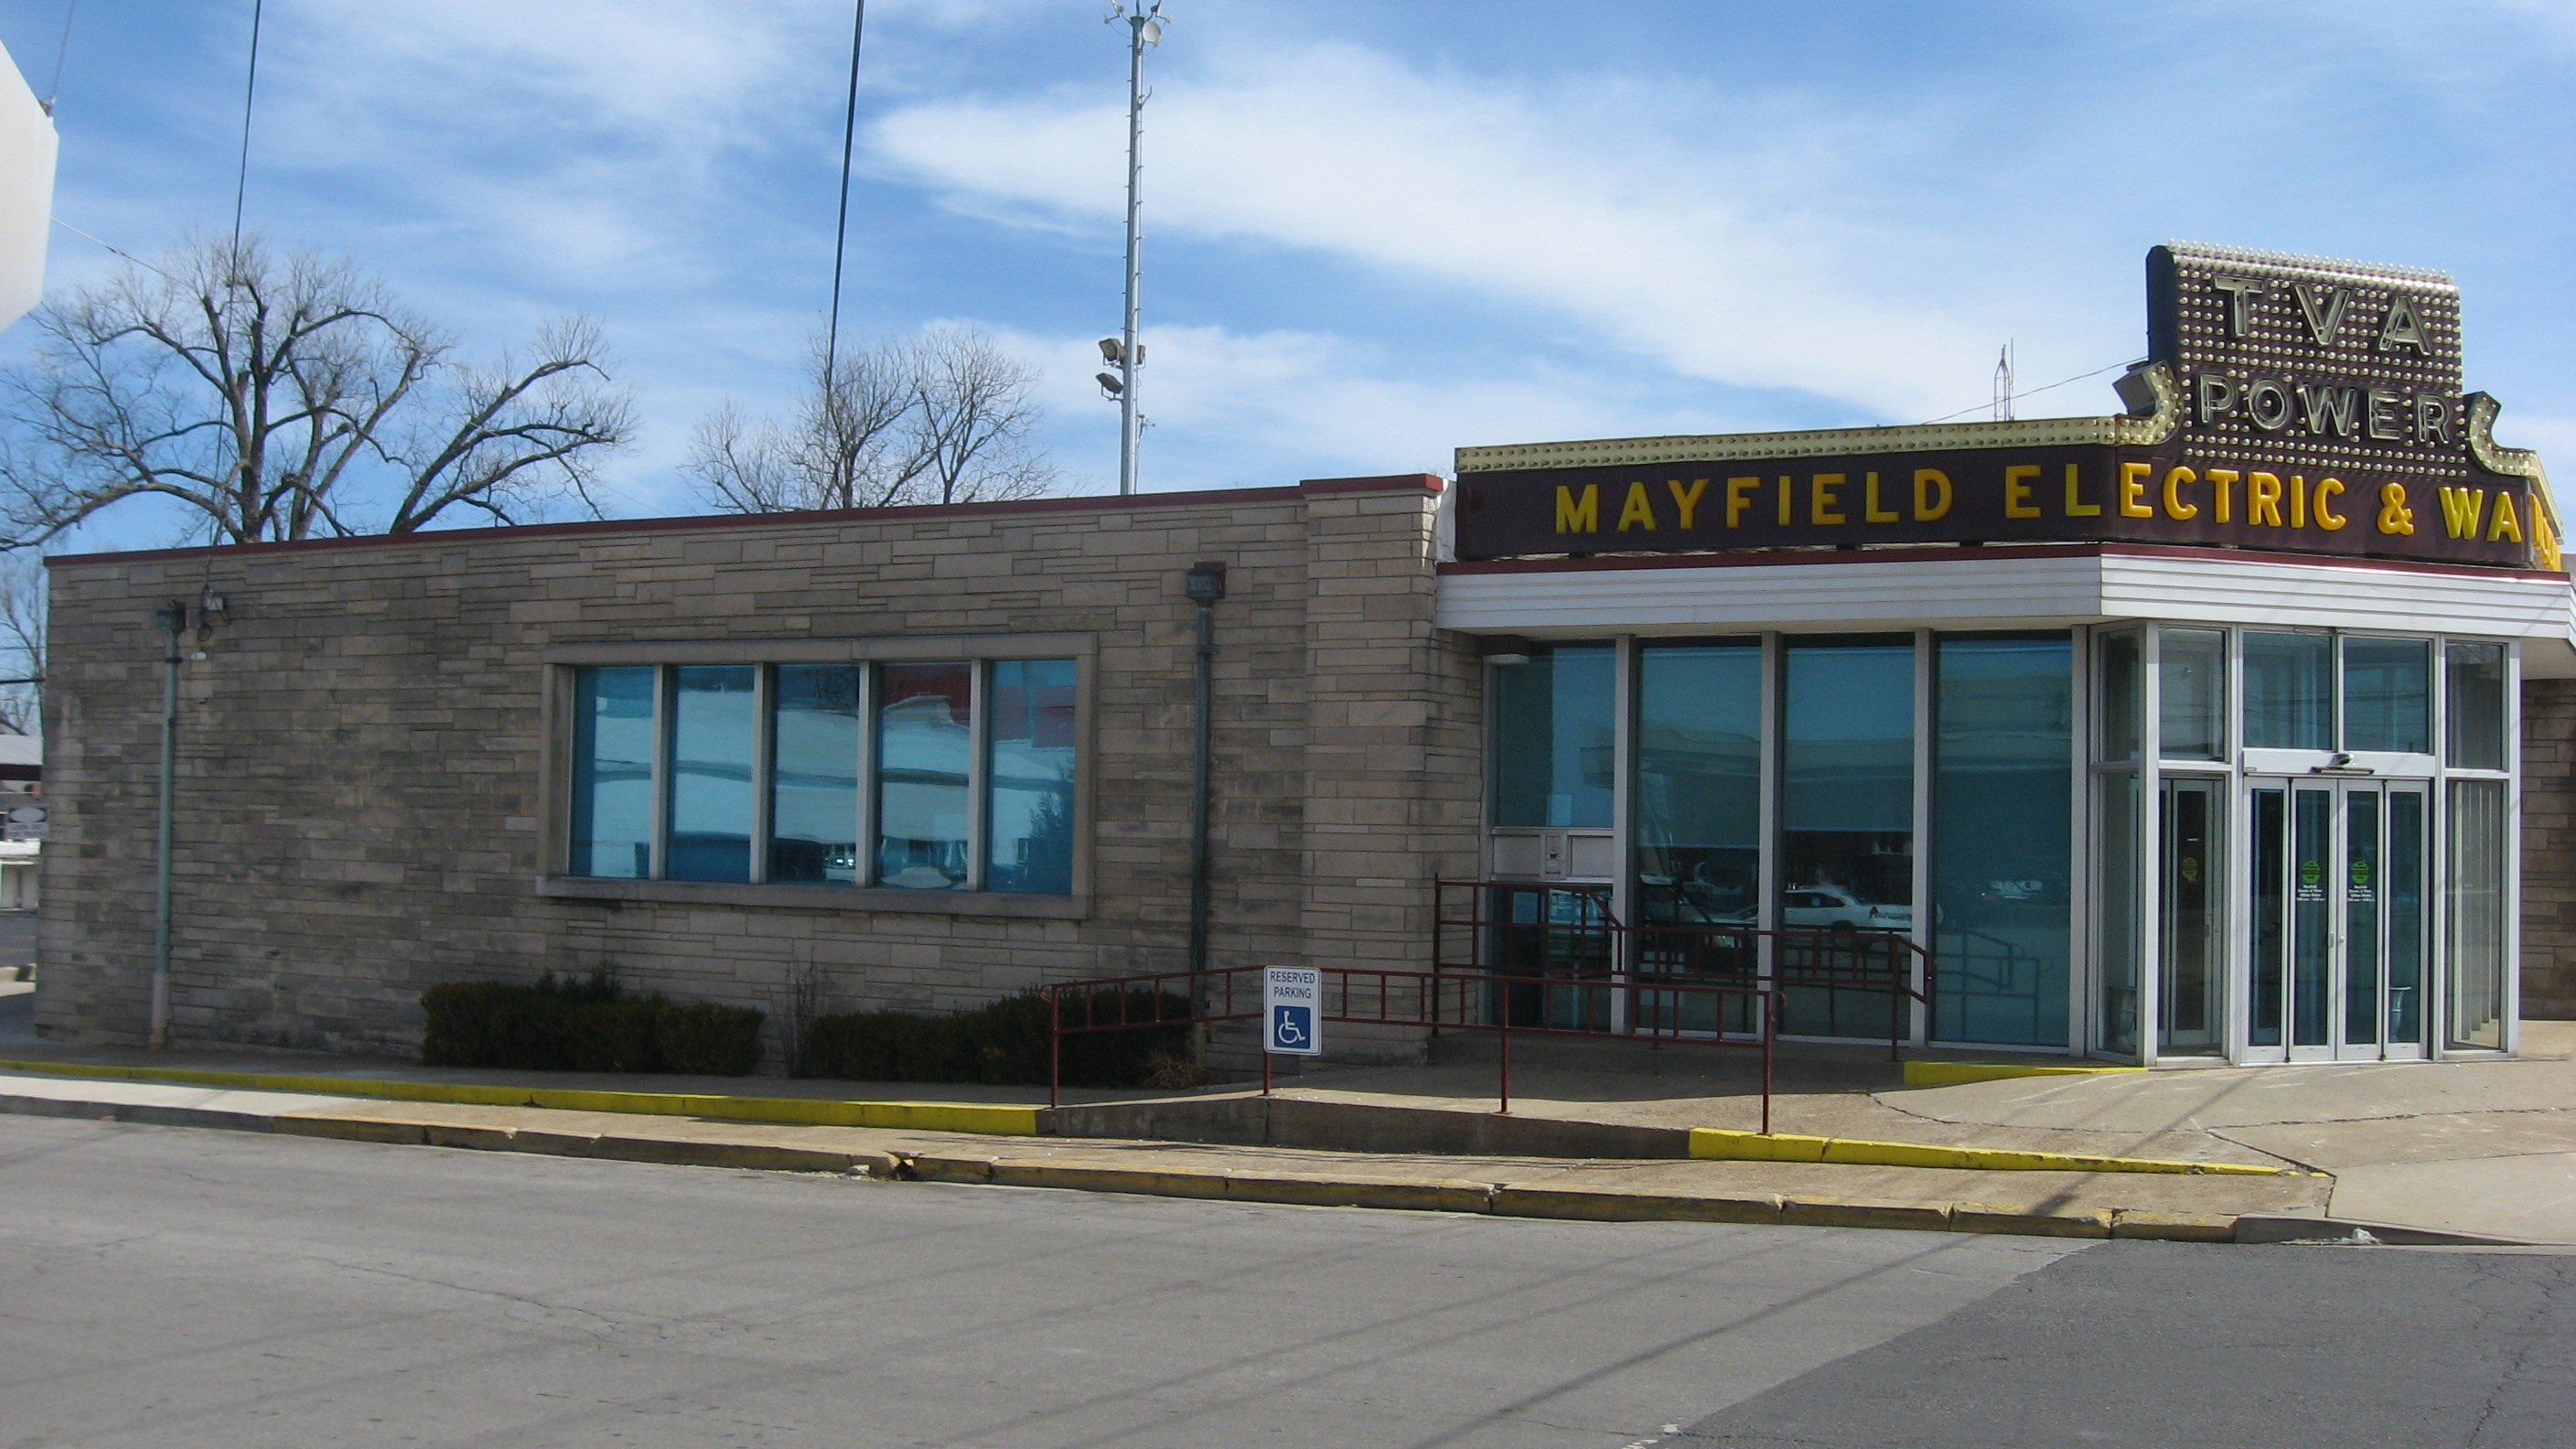 File:Mayfield Electric and Water Systems.jpg - Wikimedia Commons